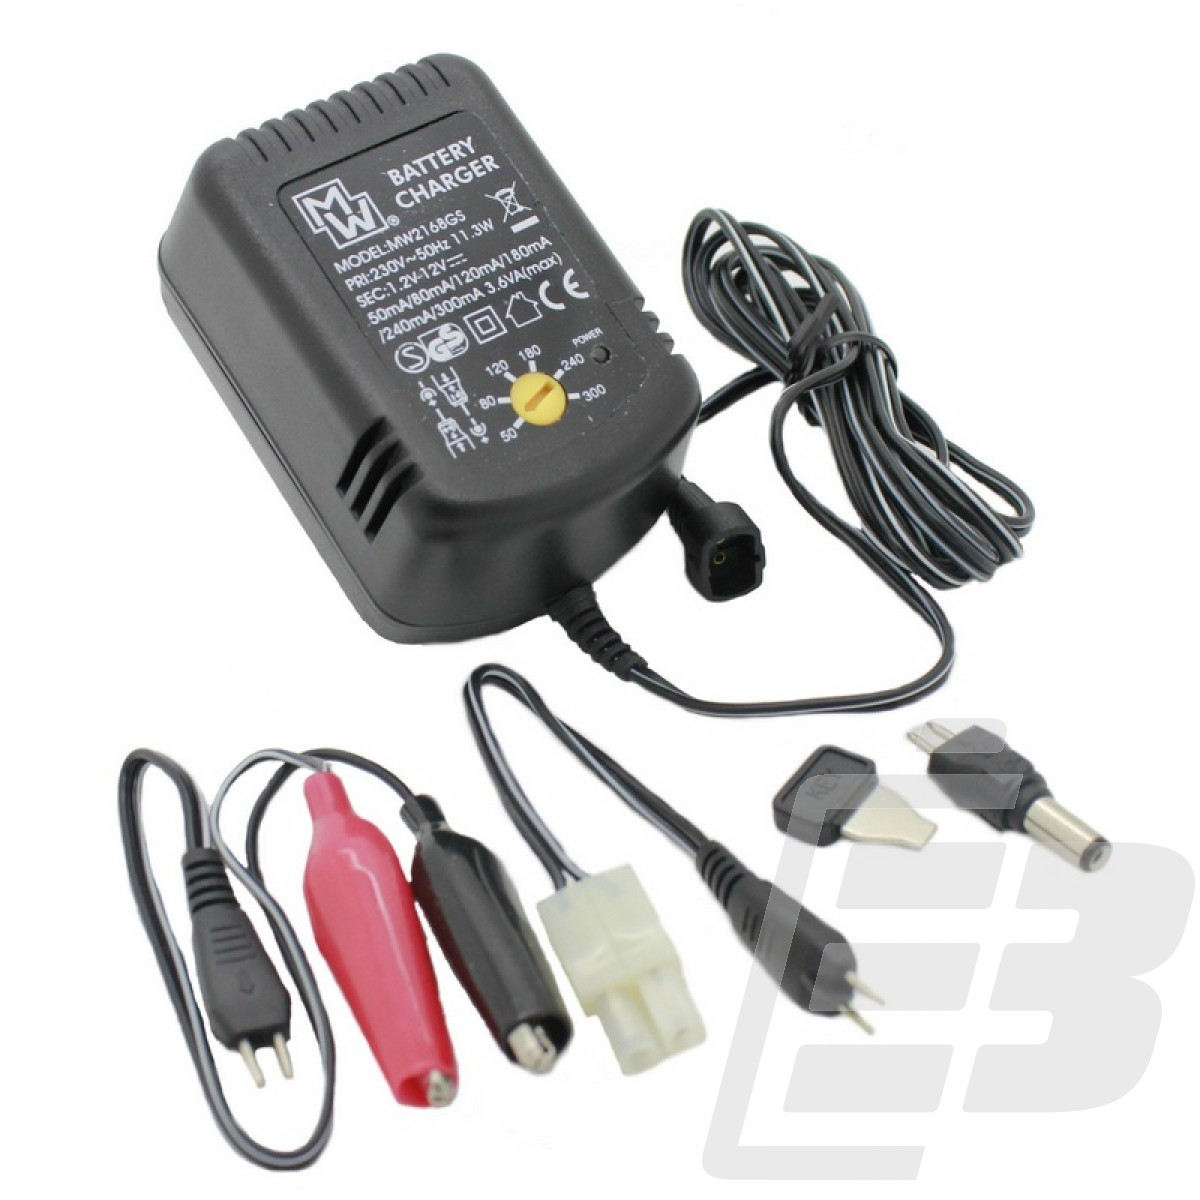 MW2167GS Auto Detect Universal Battery Pack Charger 1